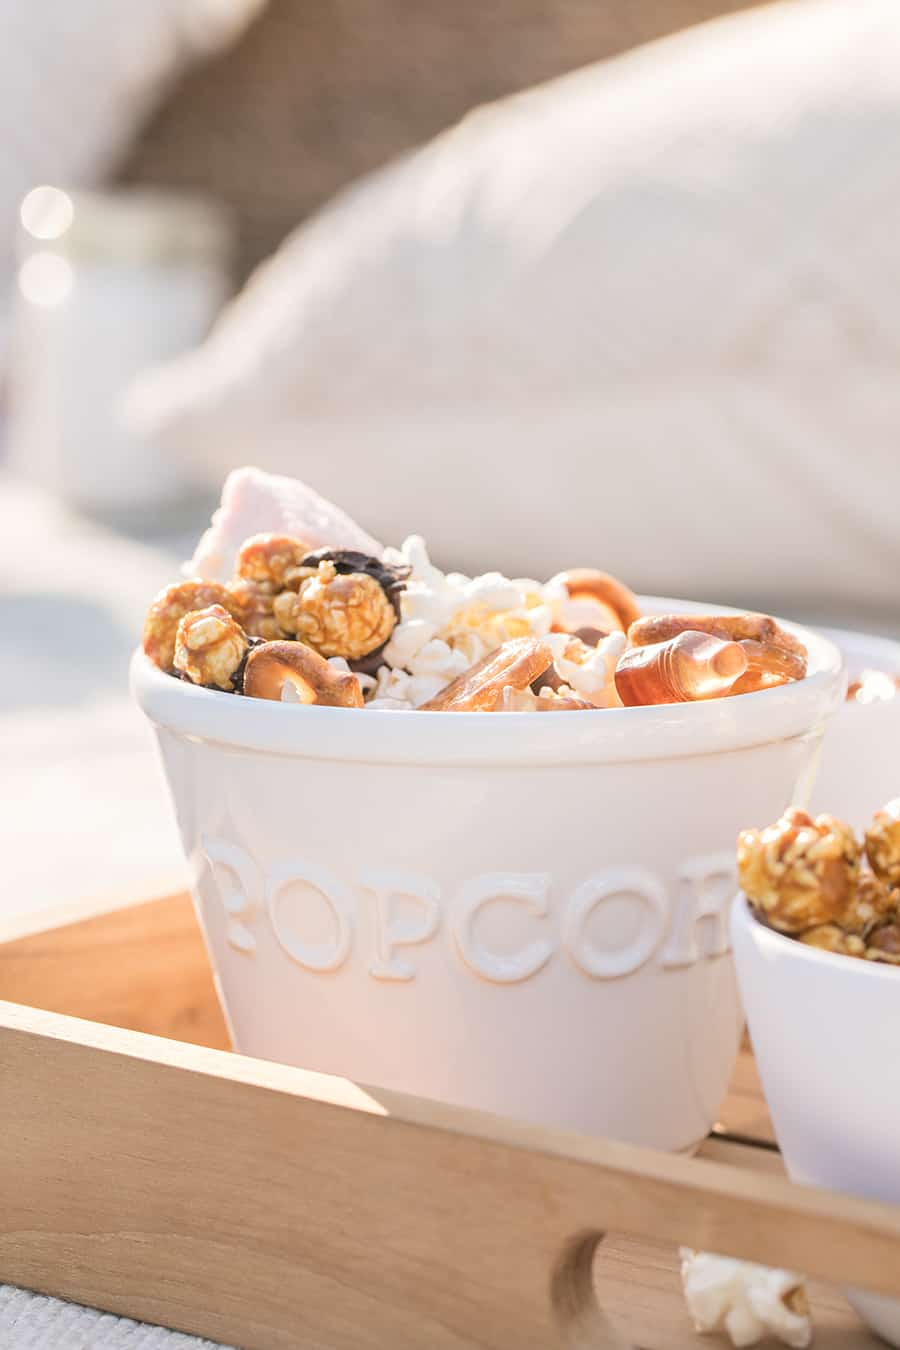 Popcorn bowl with popcorn with chocolate and pretzels.